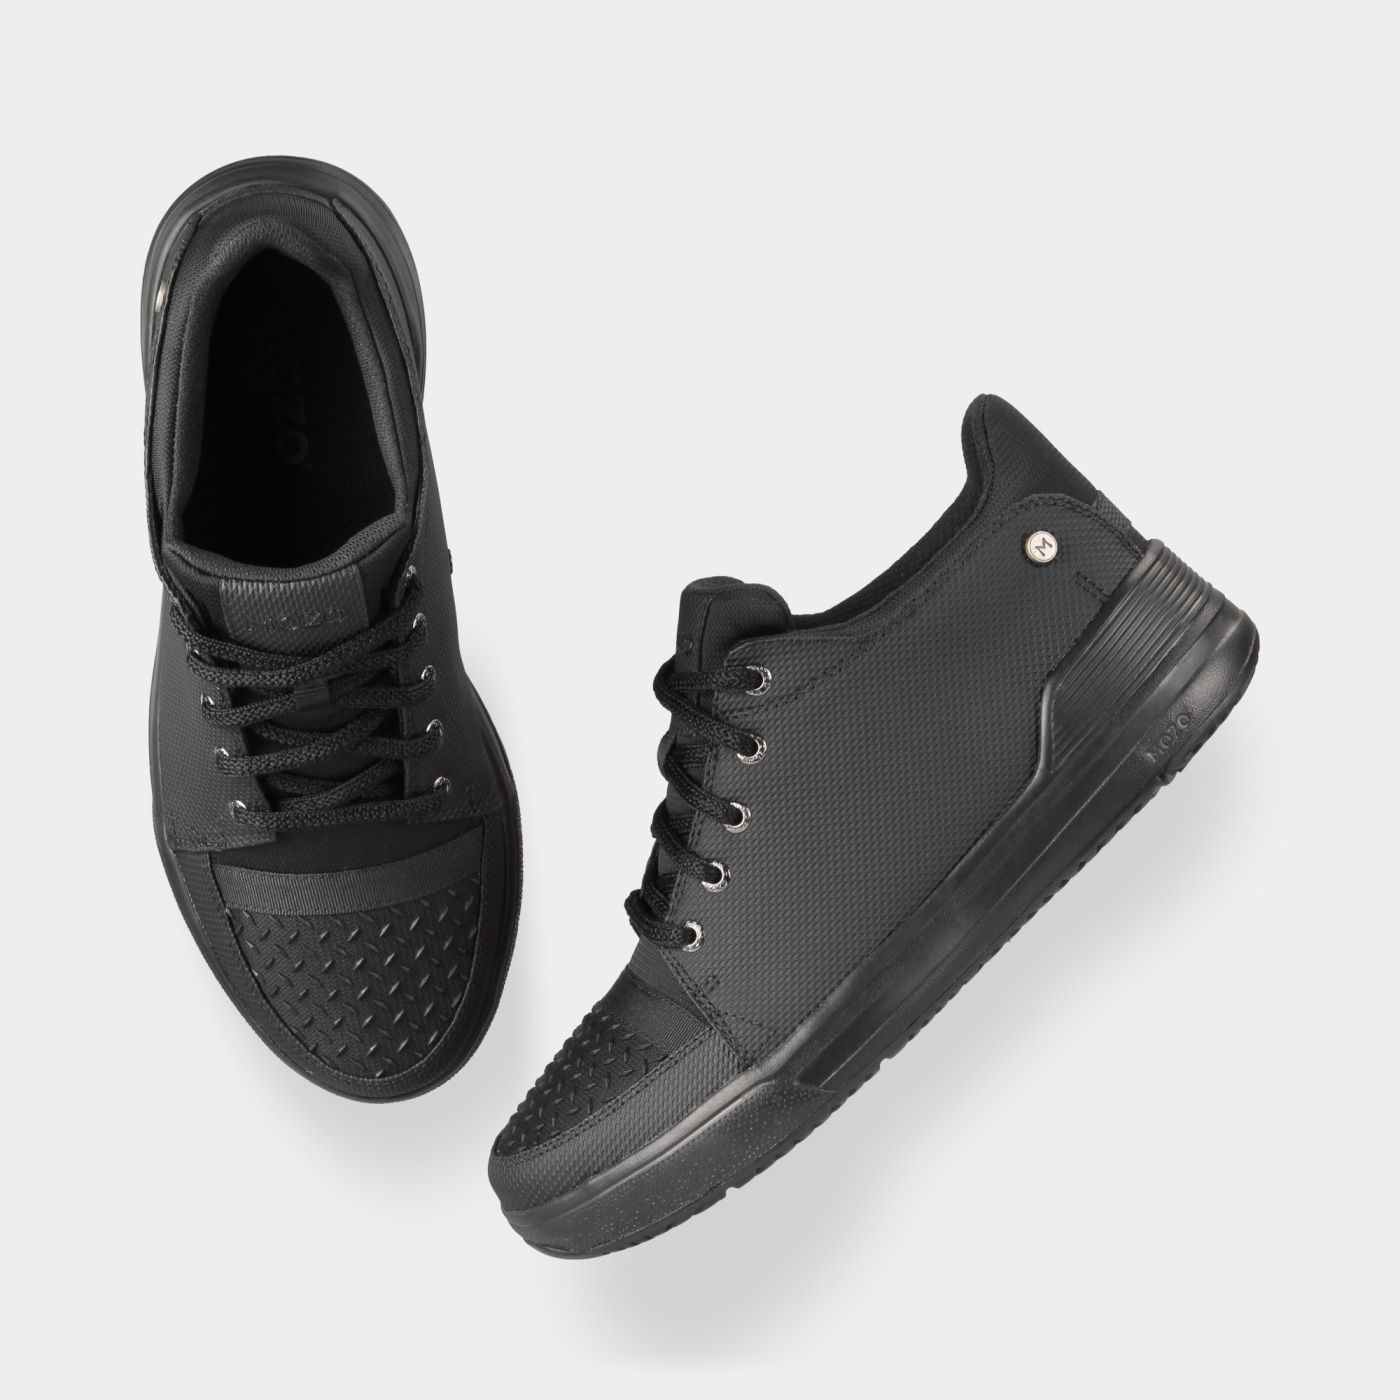 mozo s gallant is a slip resistant kitchen shoe with scruff